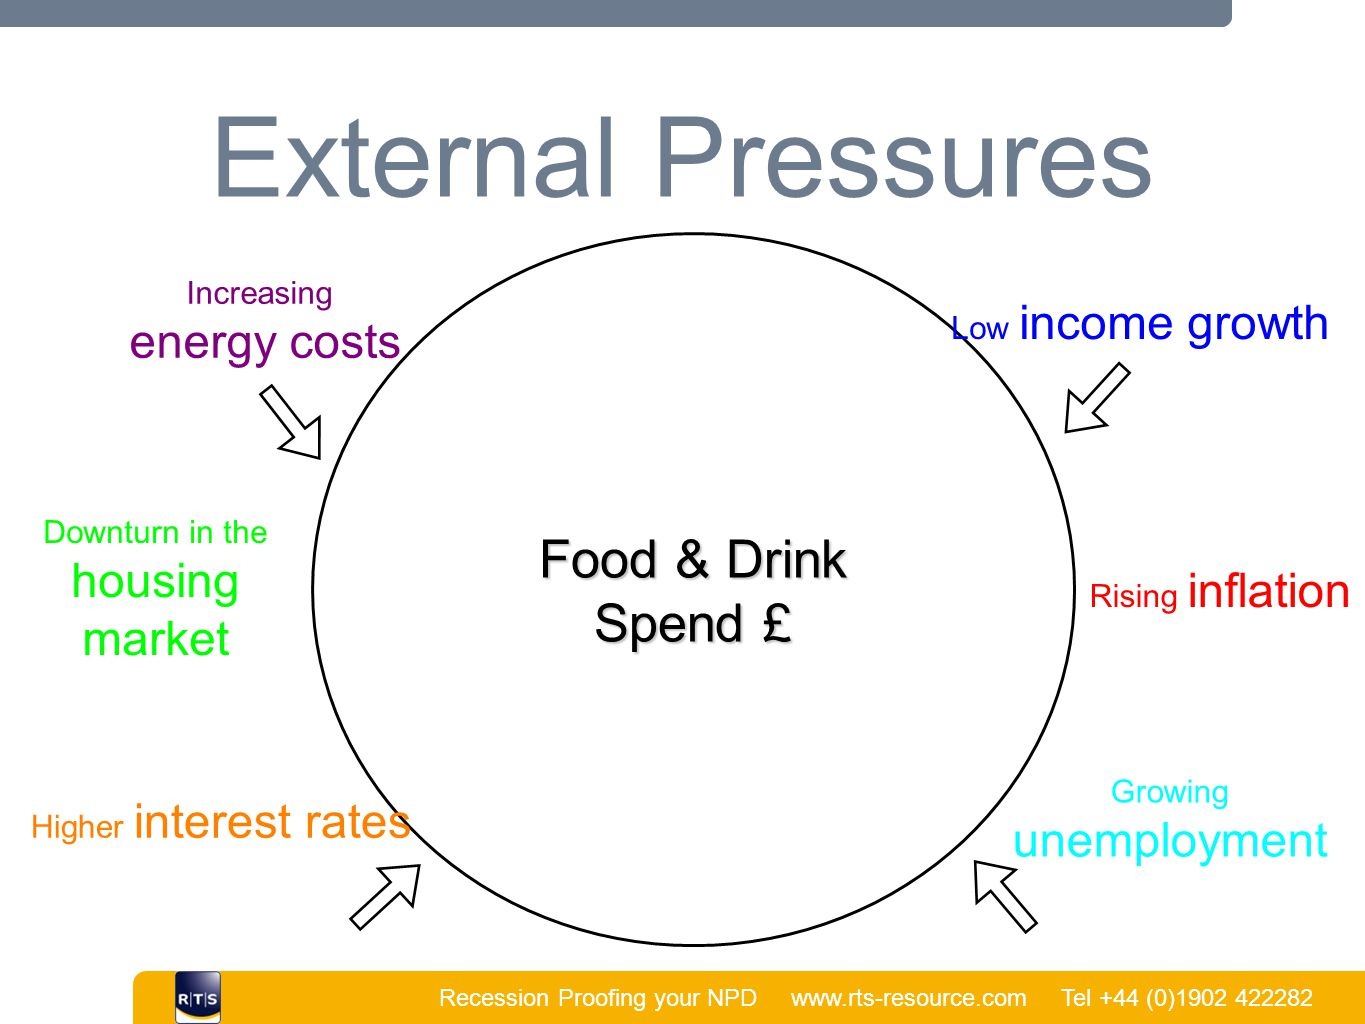 Recession Proofing your NPD www.rts-resource.com Tel +44 (0)1902 422282 | External Pressures Food & Drink Spend £ Low income growth Increasing energy costs Downturn in the housing market Rising inflation Higher interest rates Growing unemployment